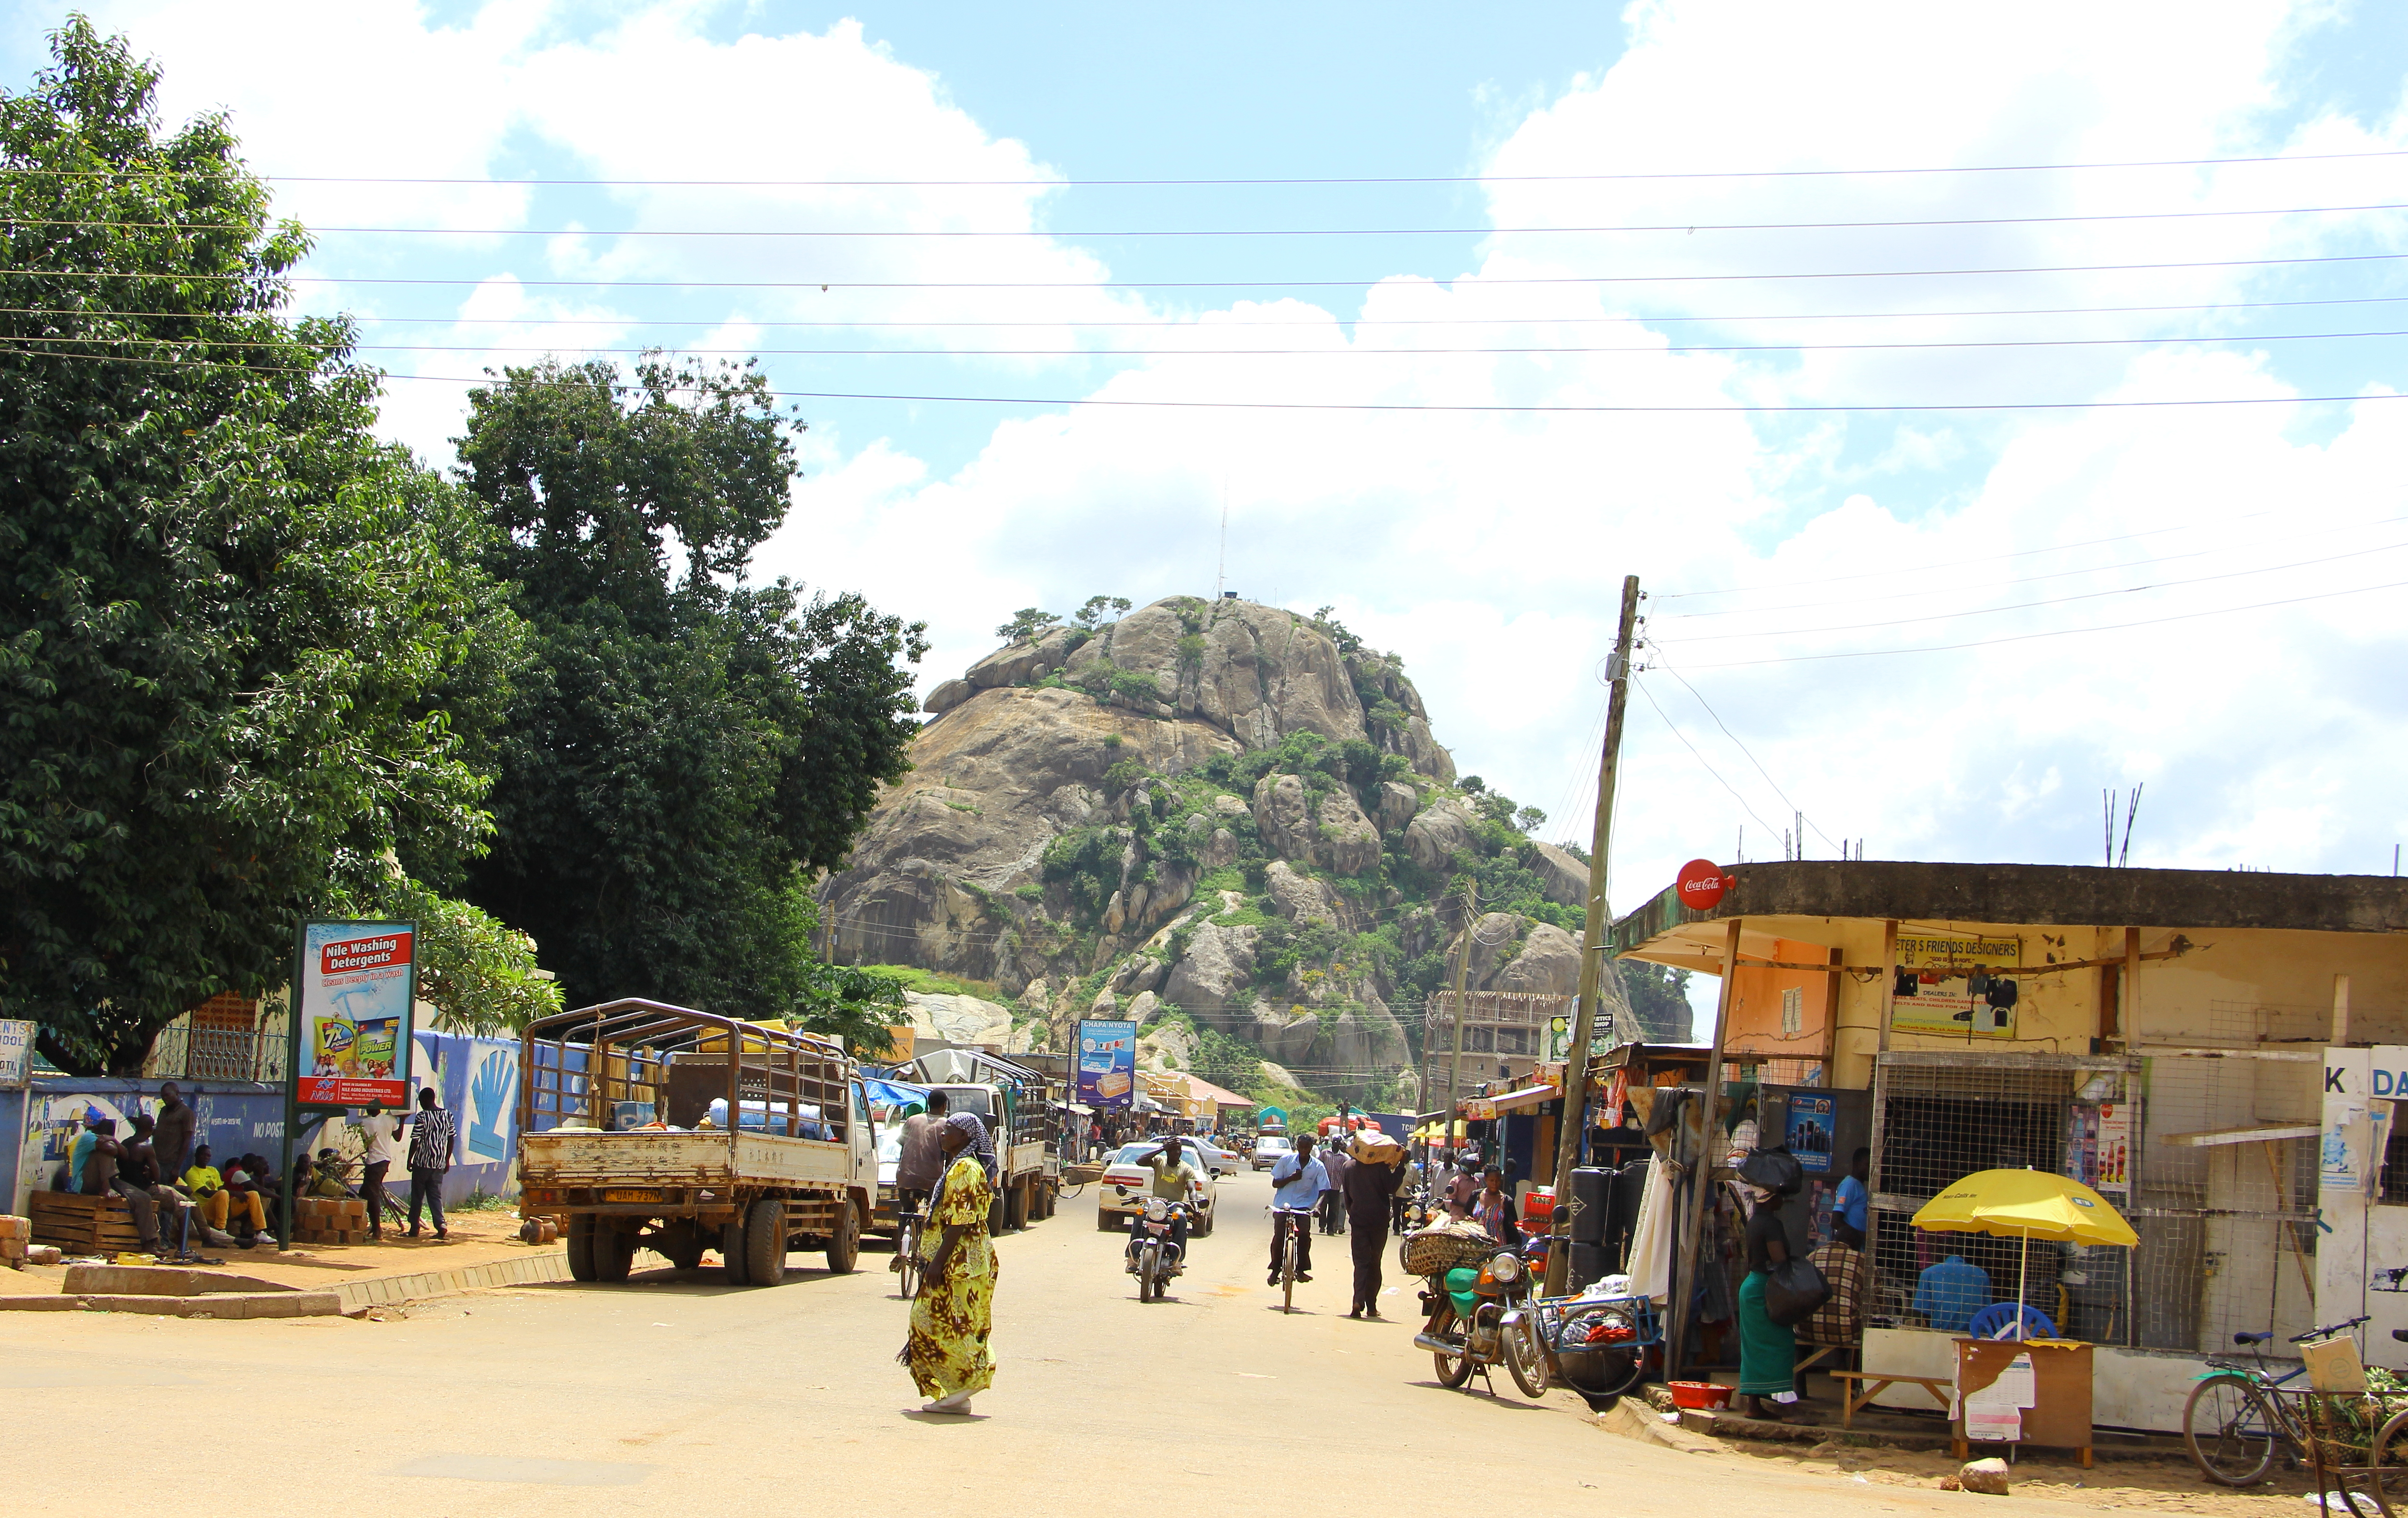 A view of Soroti Rock from a main street in town